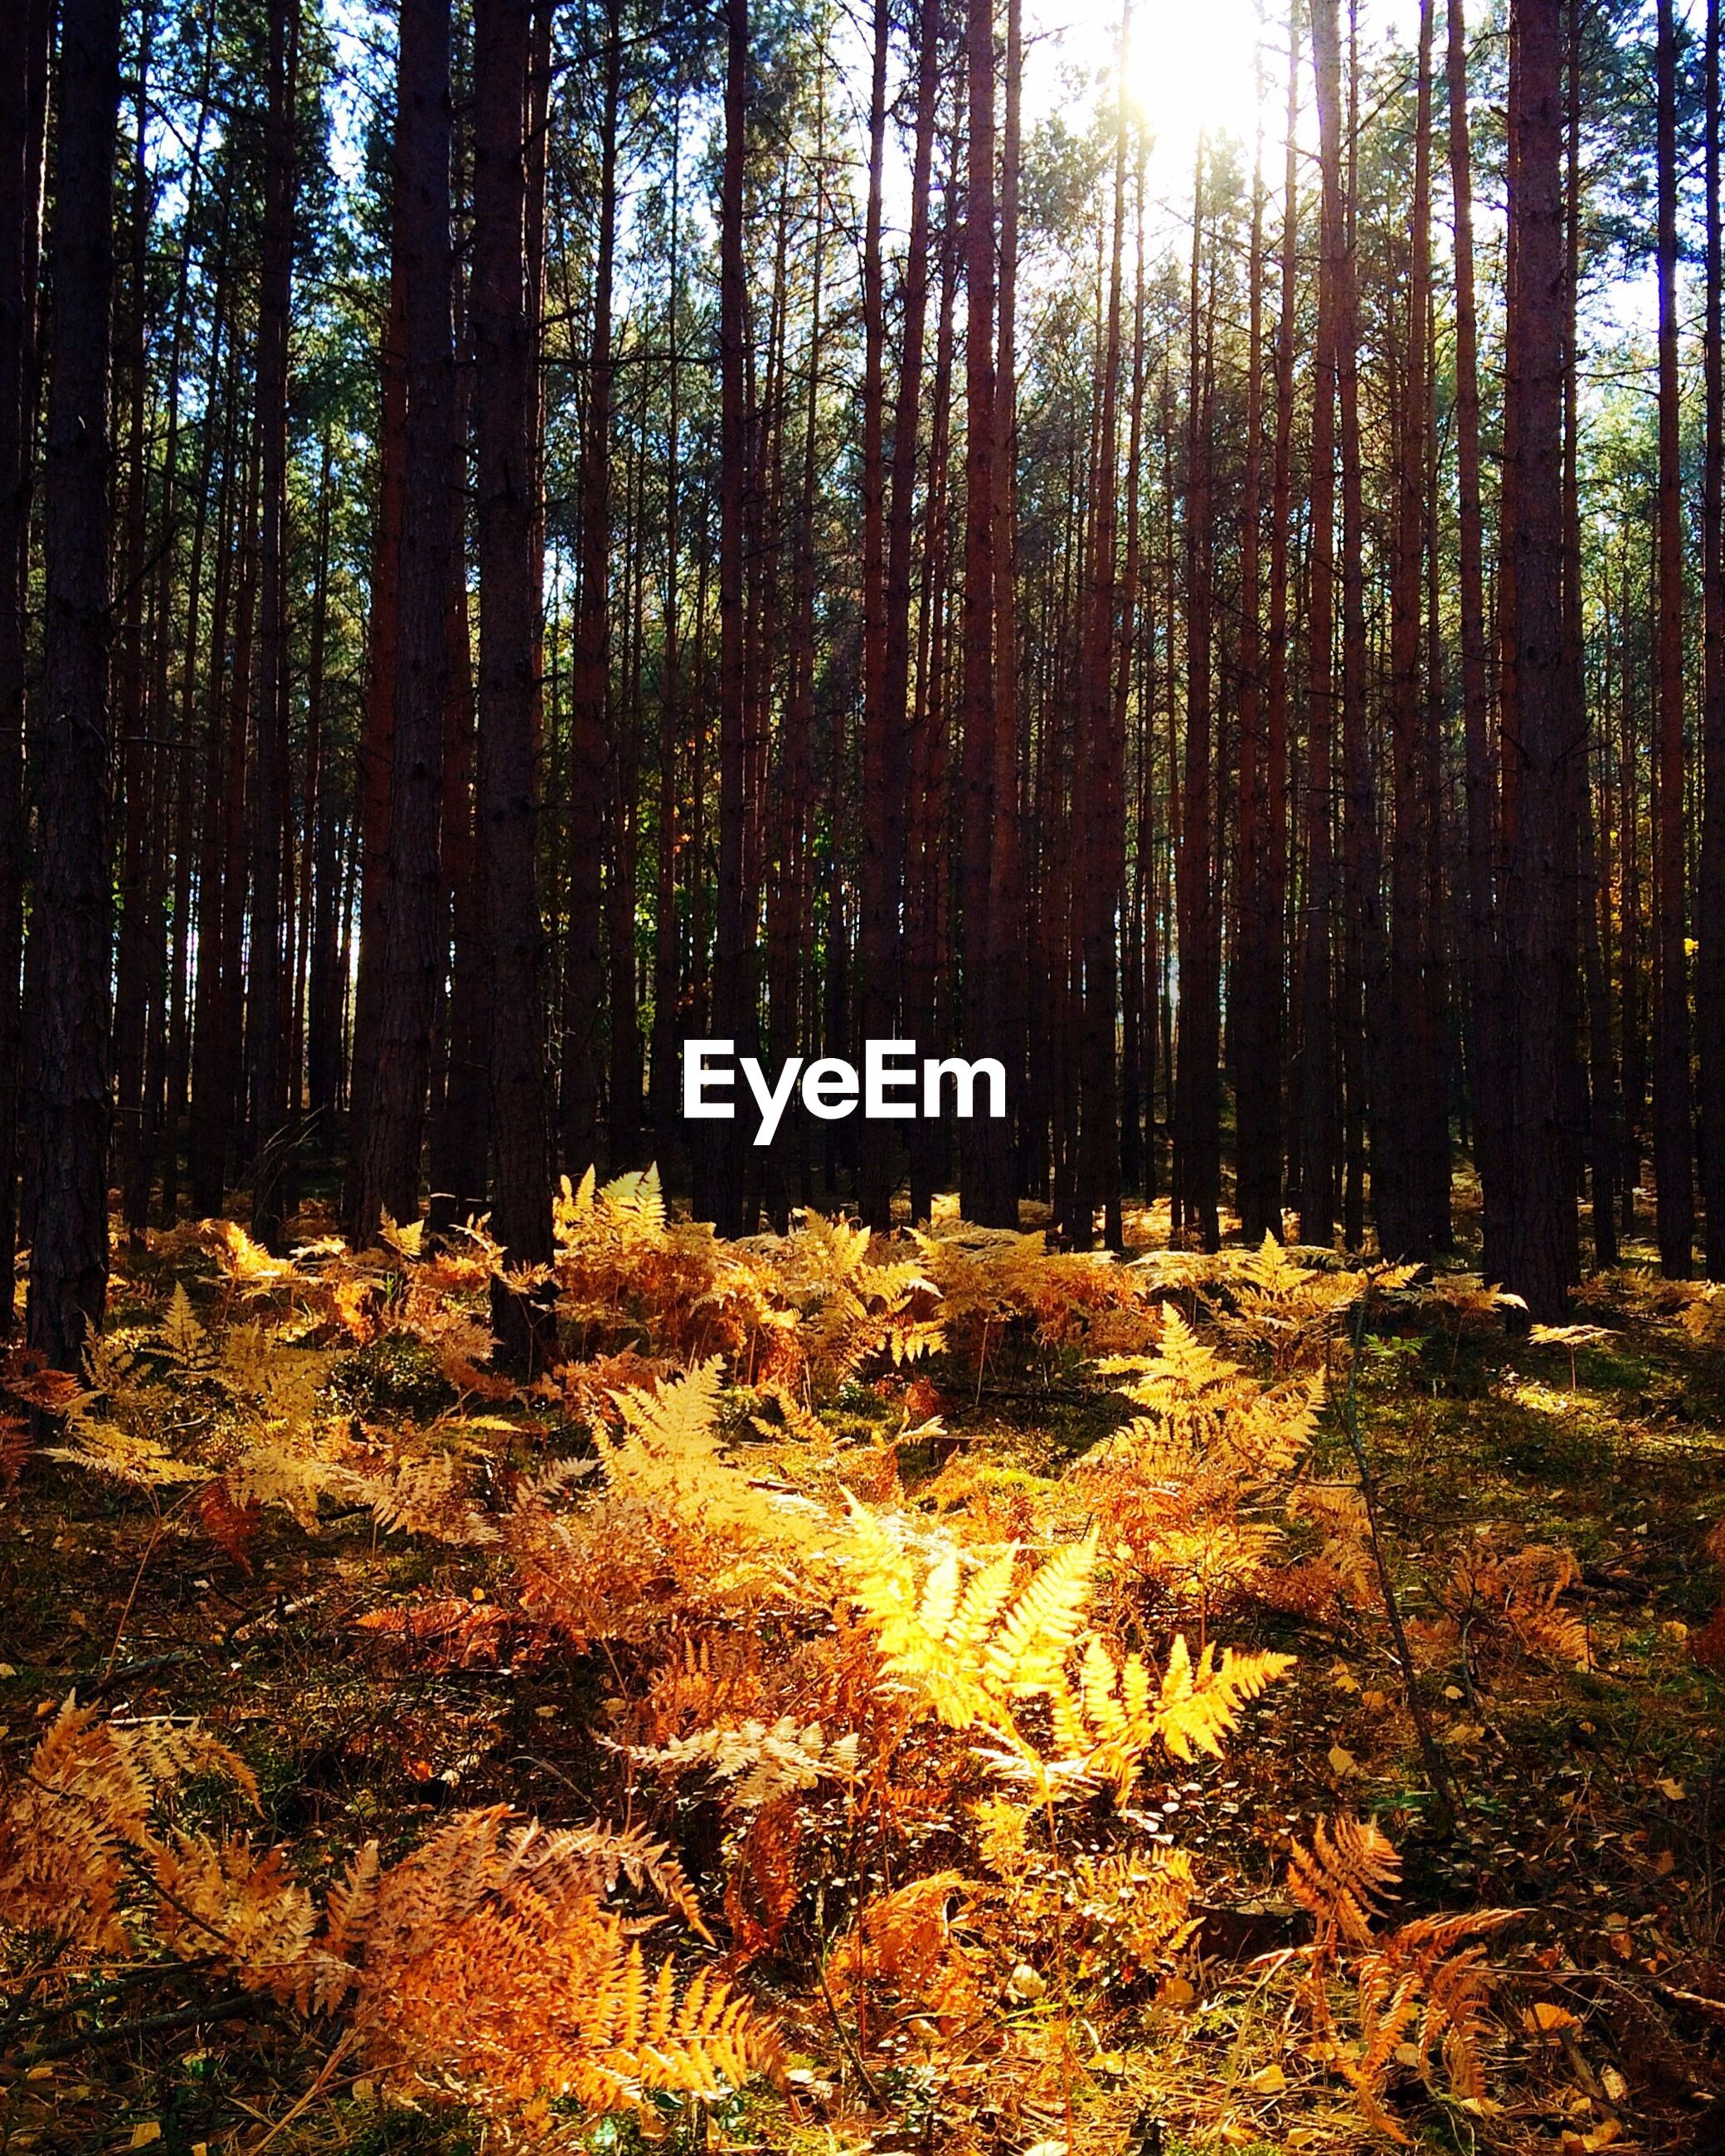 Trees and plants growing in forest during autumn